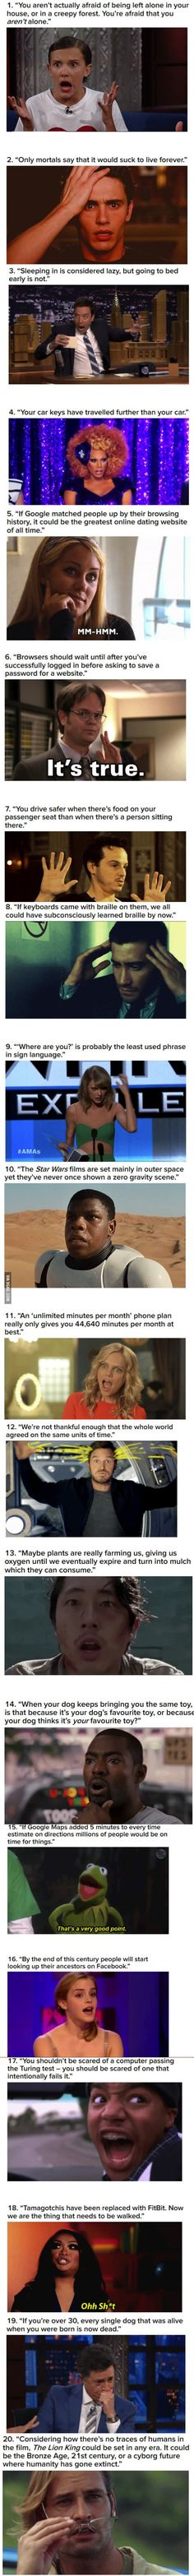 20 thoughts that become more true the more you think about them - 9GAG